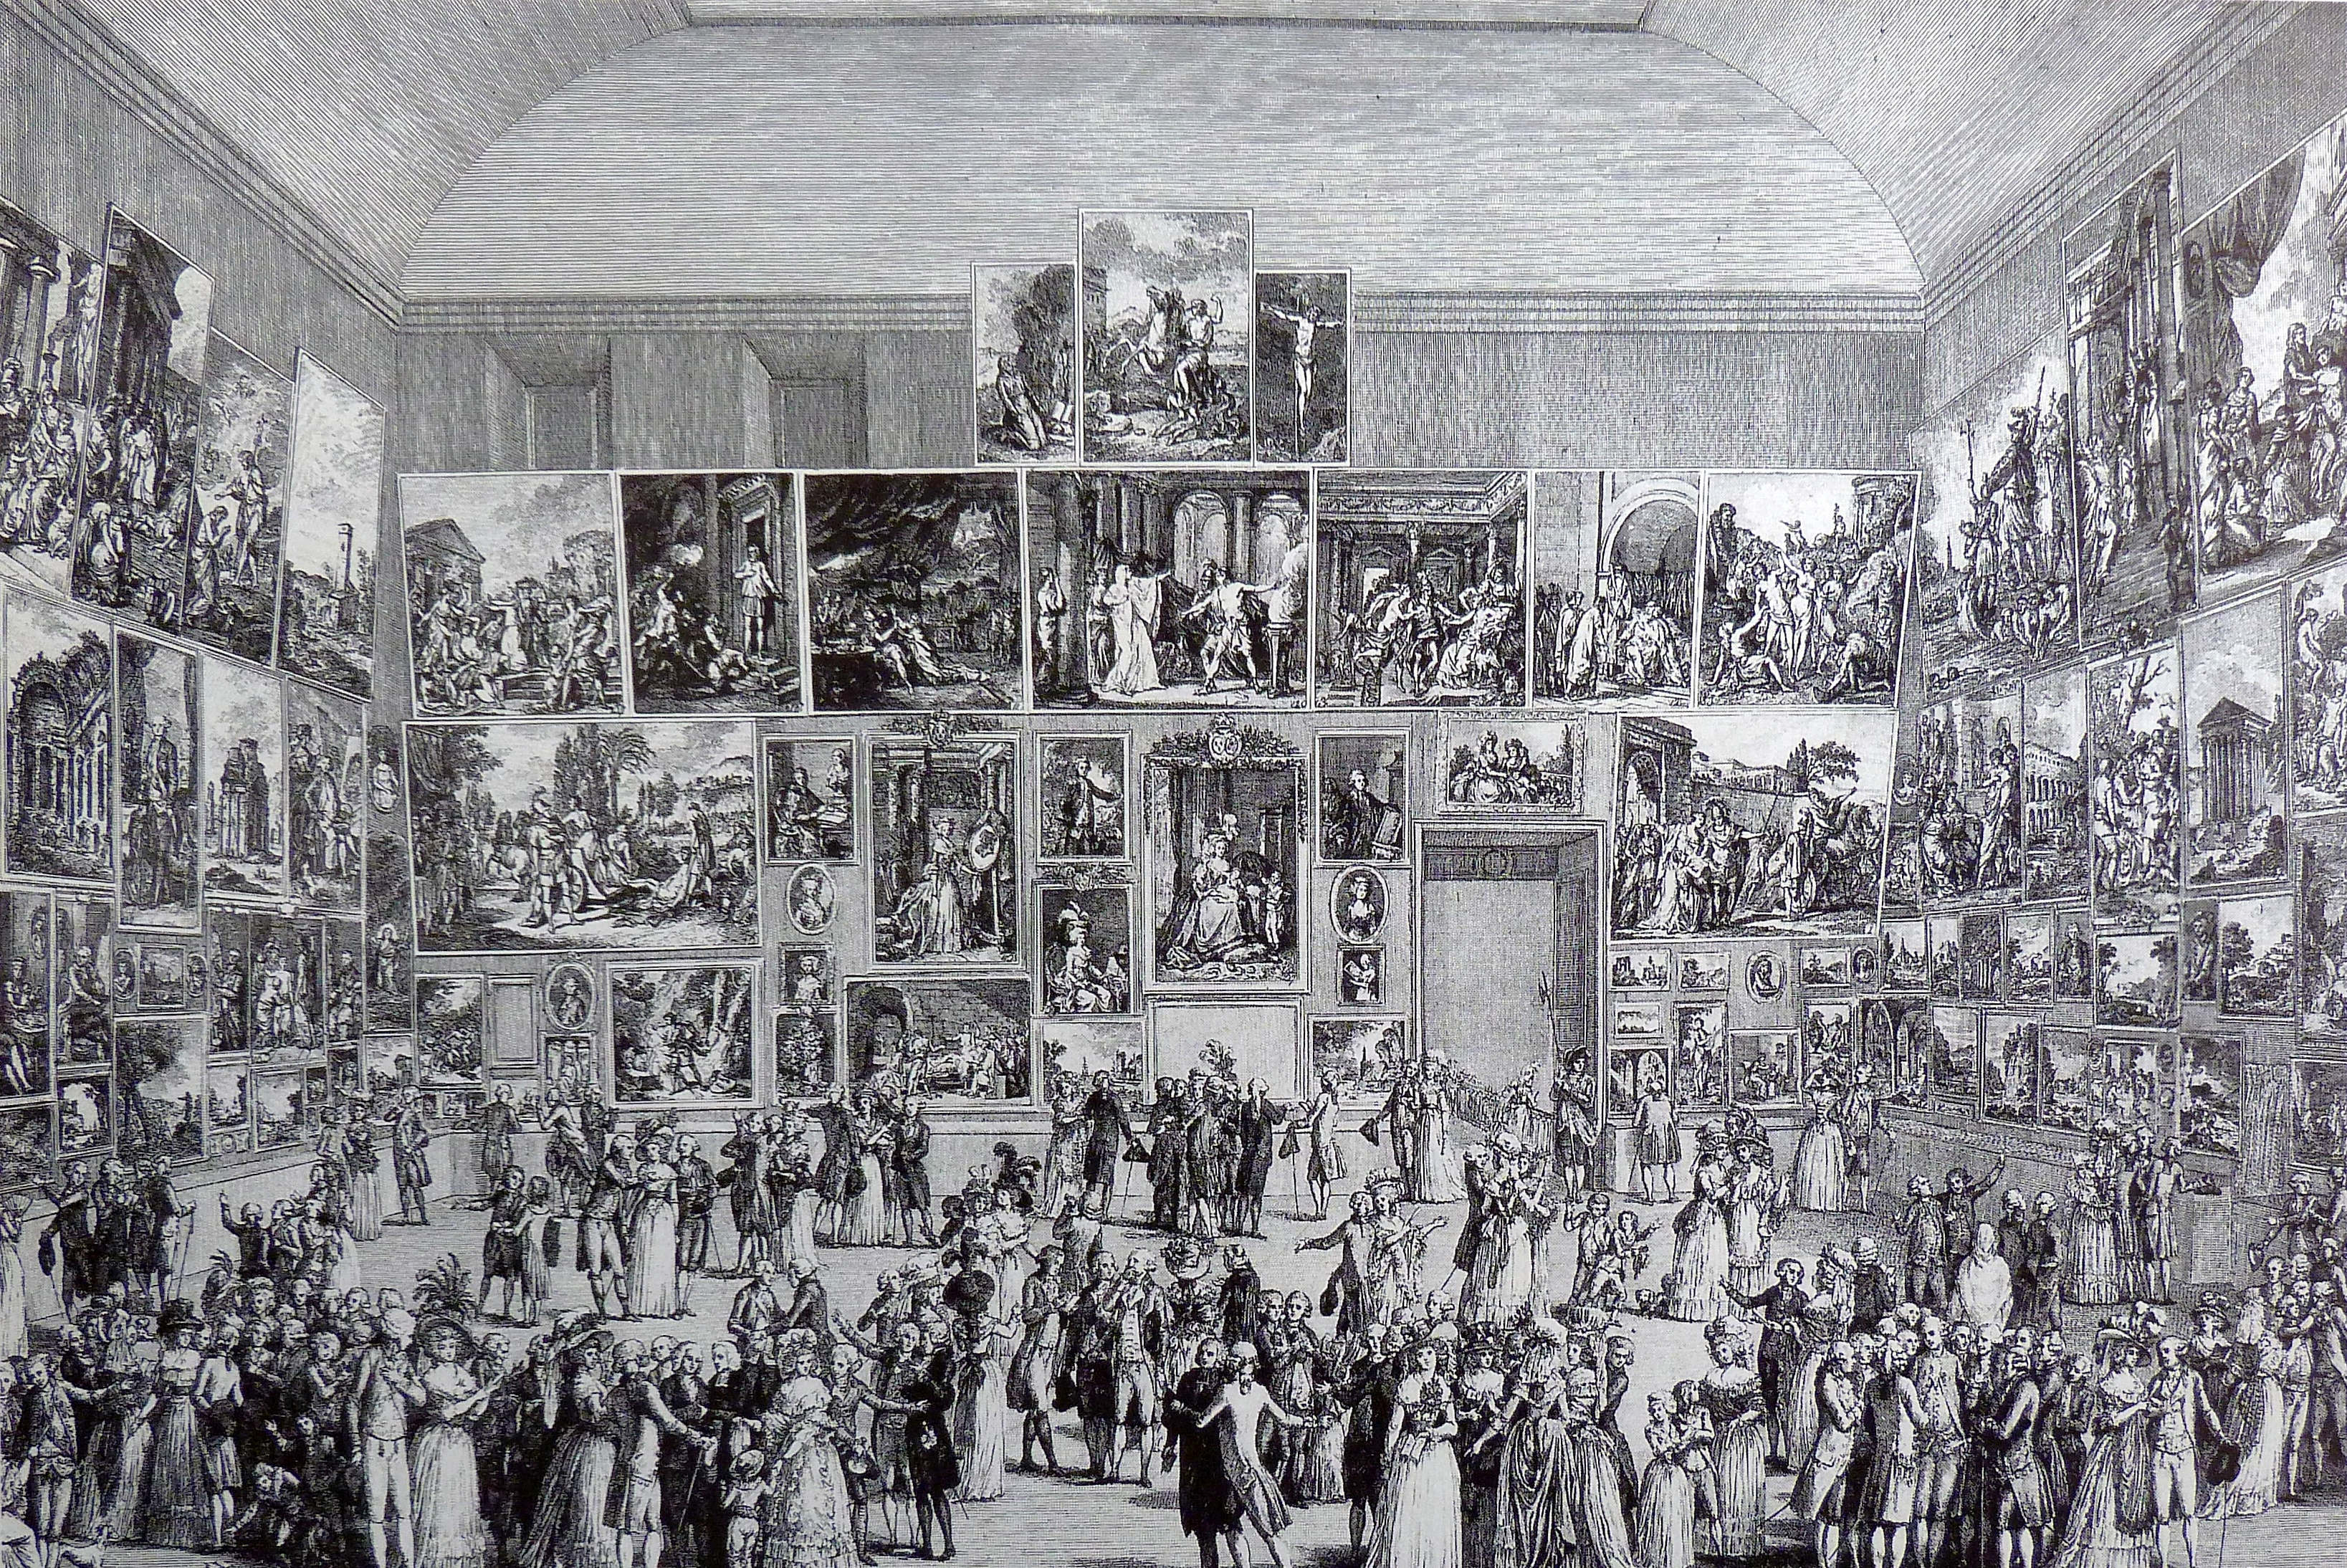 Salon de peinture et de sculpture wikiwand for Salons de paris